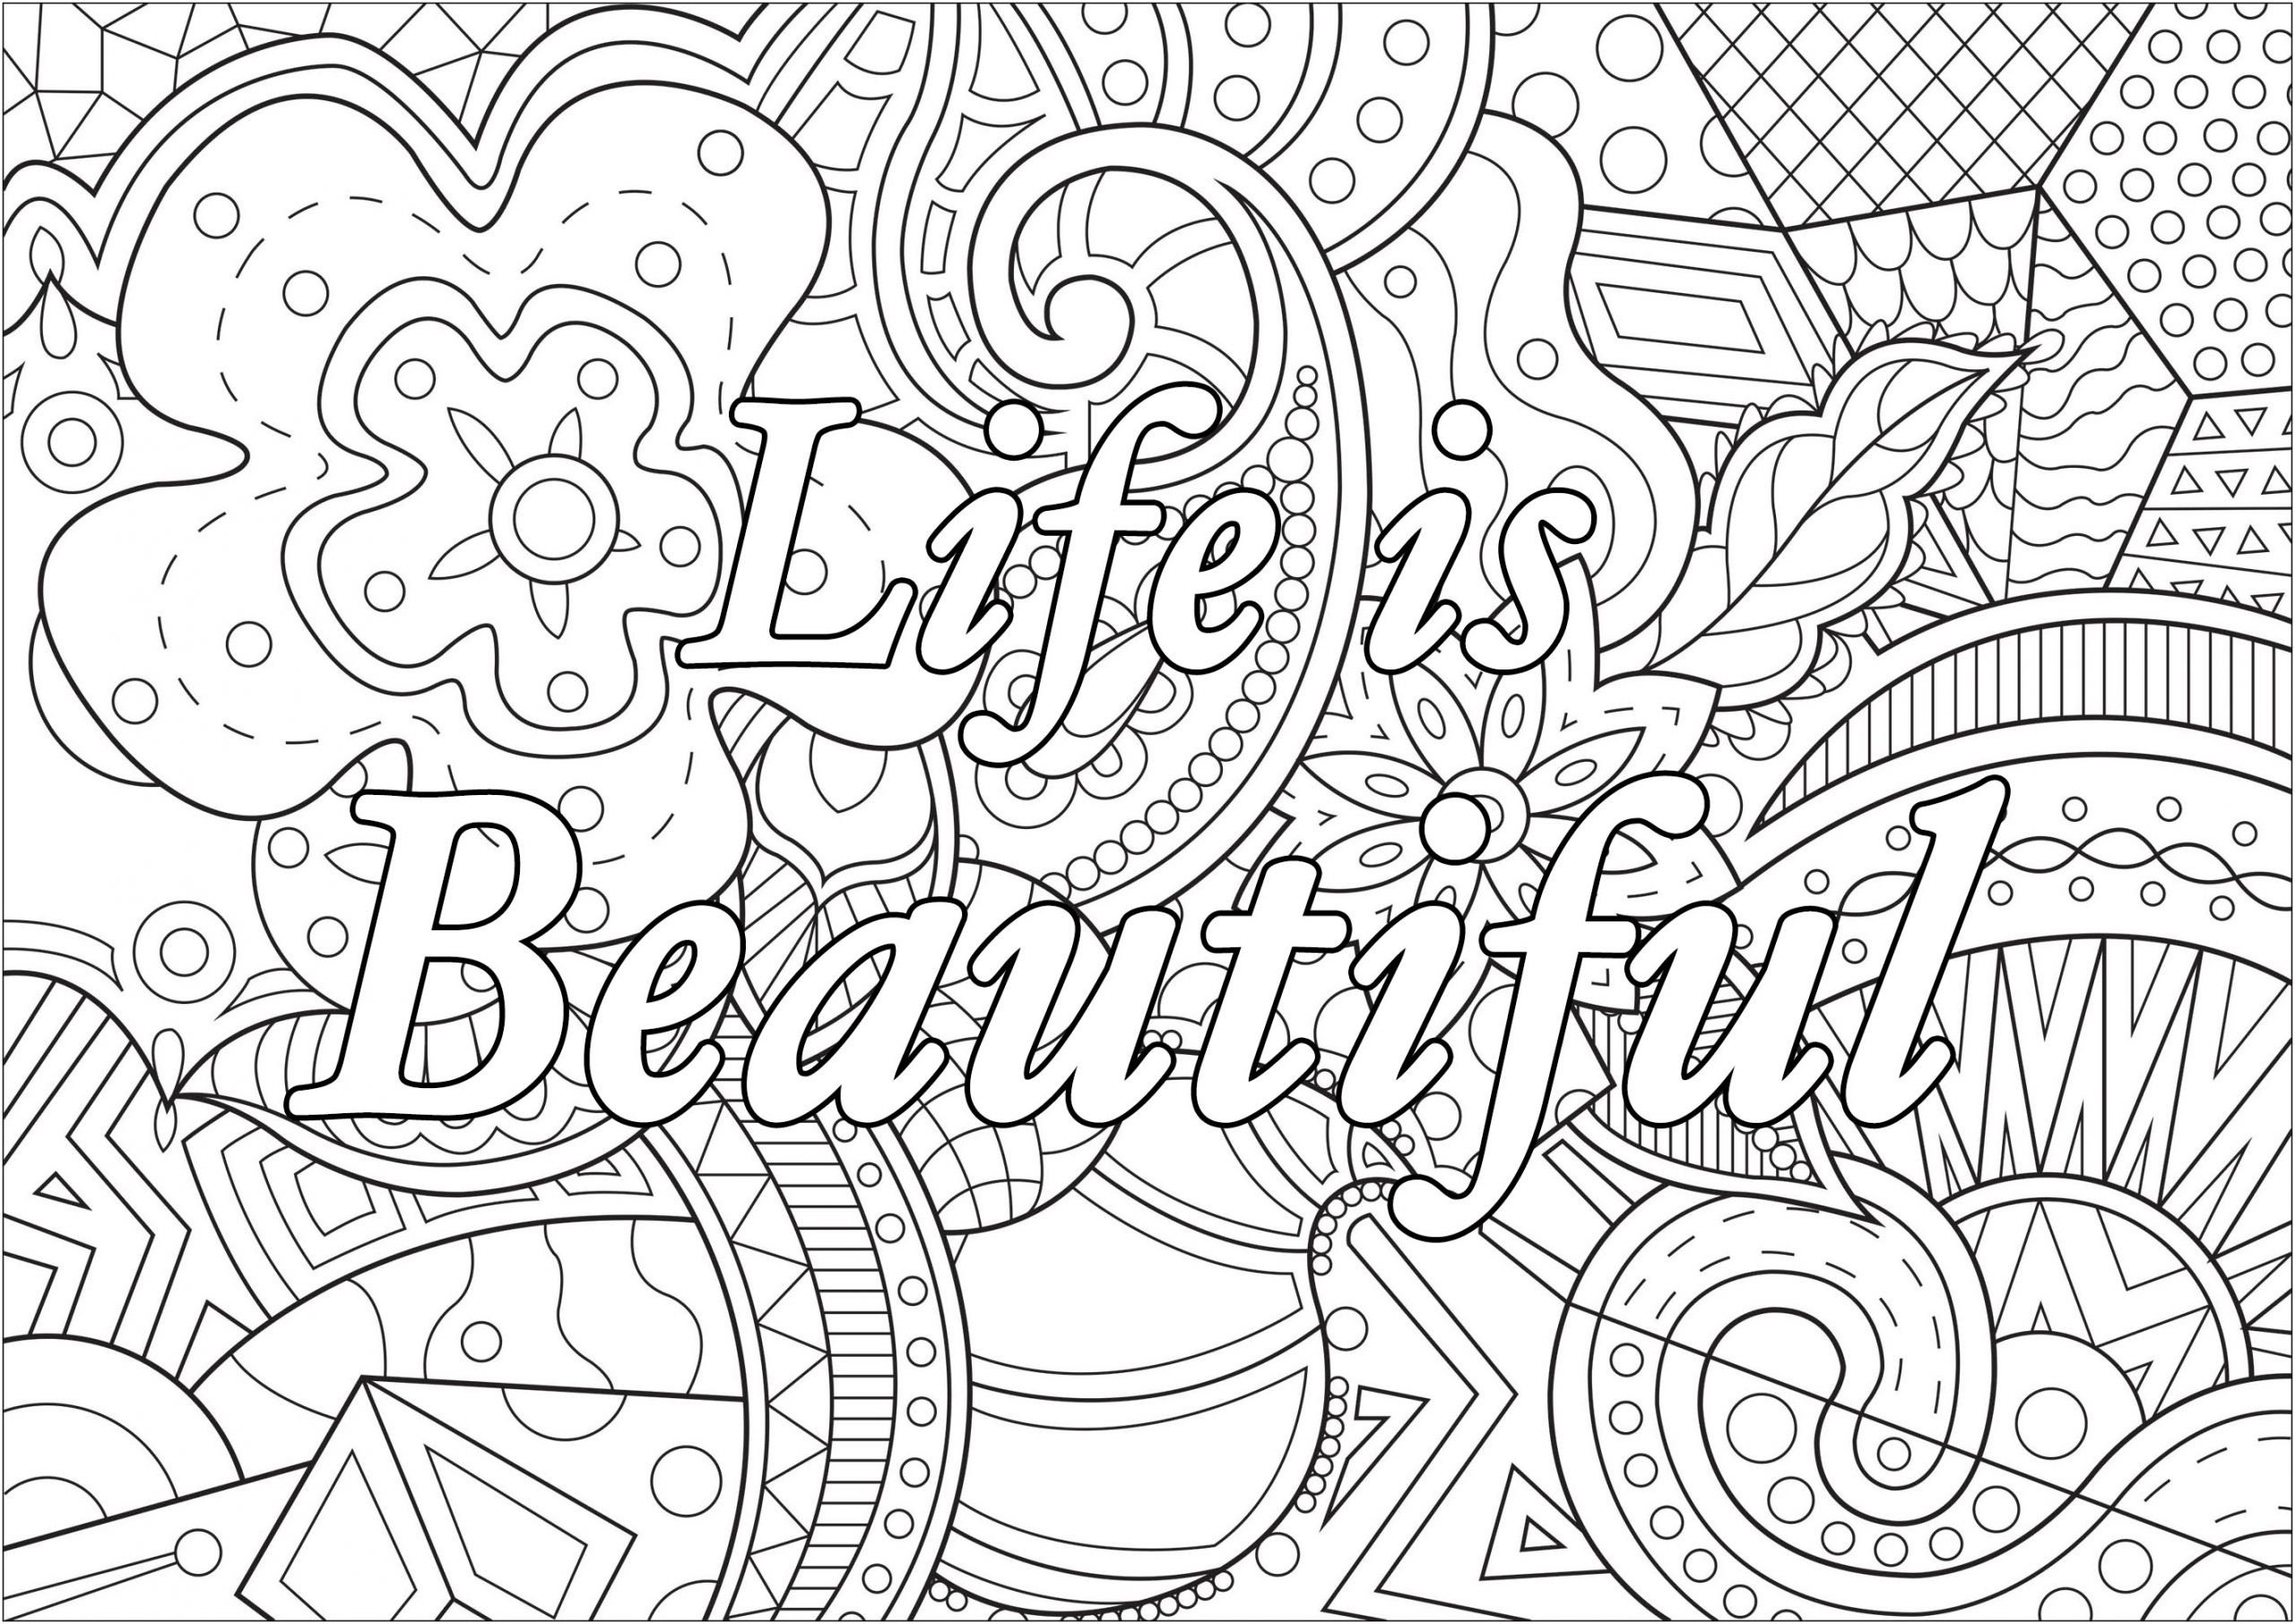 music coloring worksheets books life quotes pages for adults amazing photo ideas pdf middle school